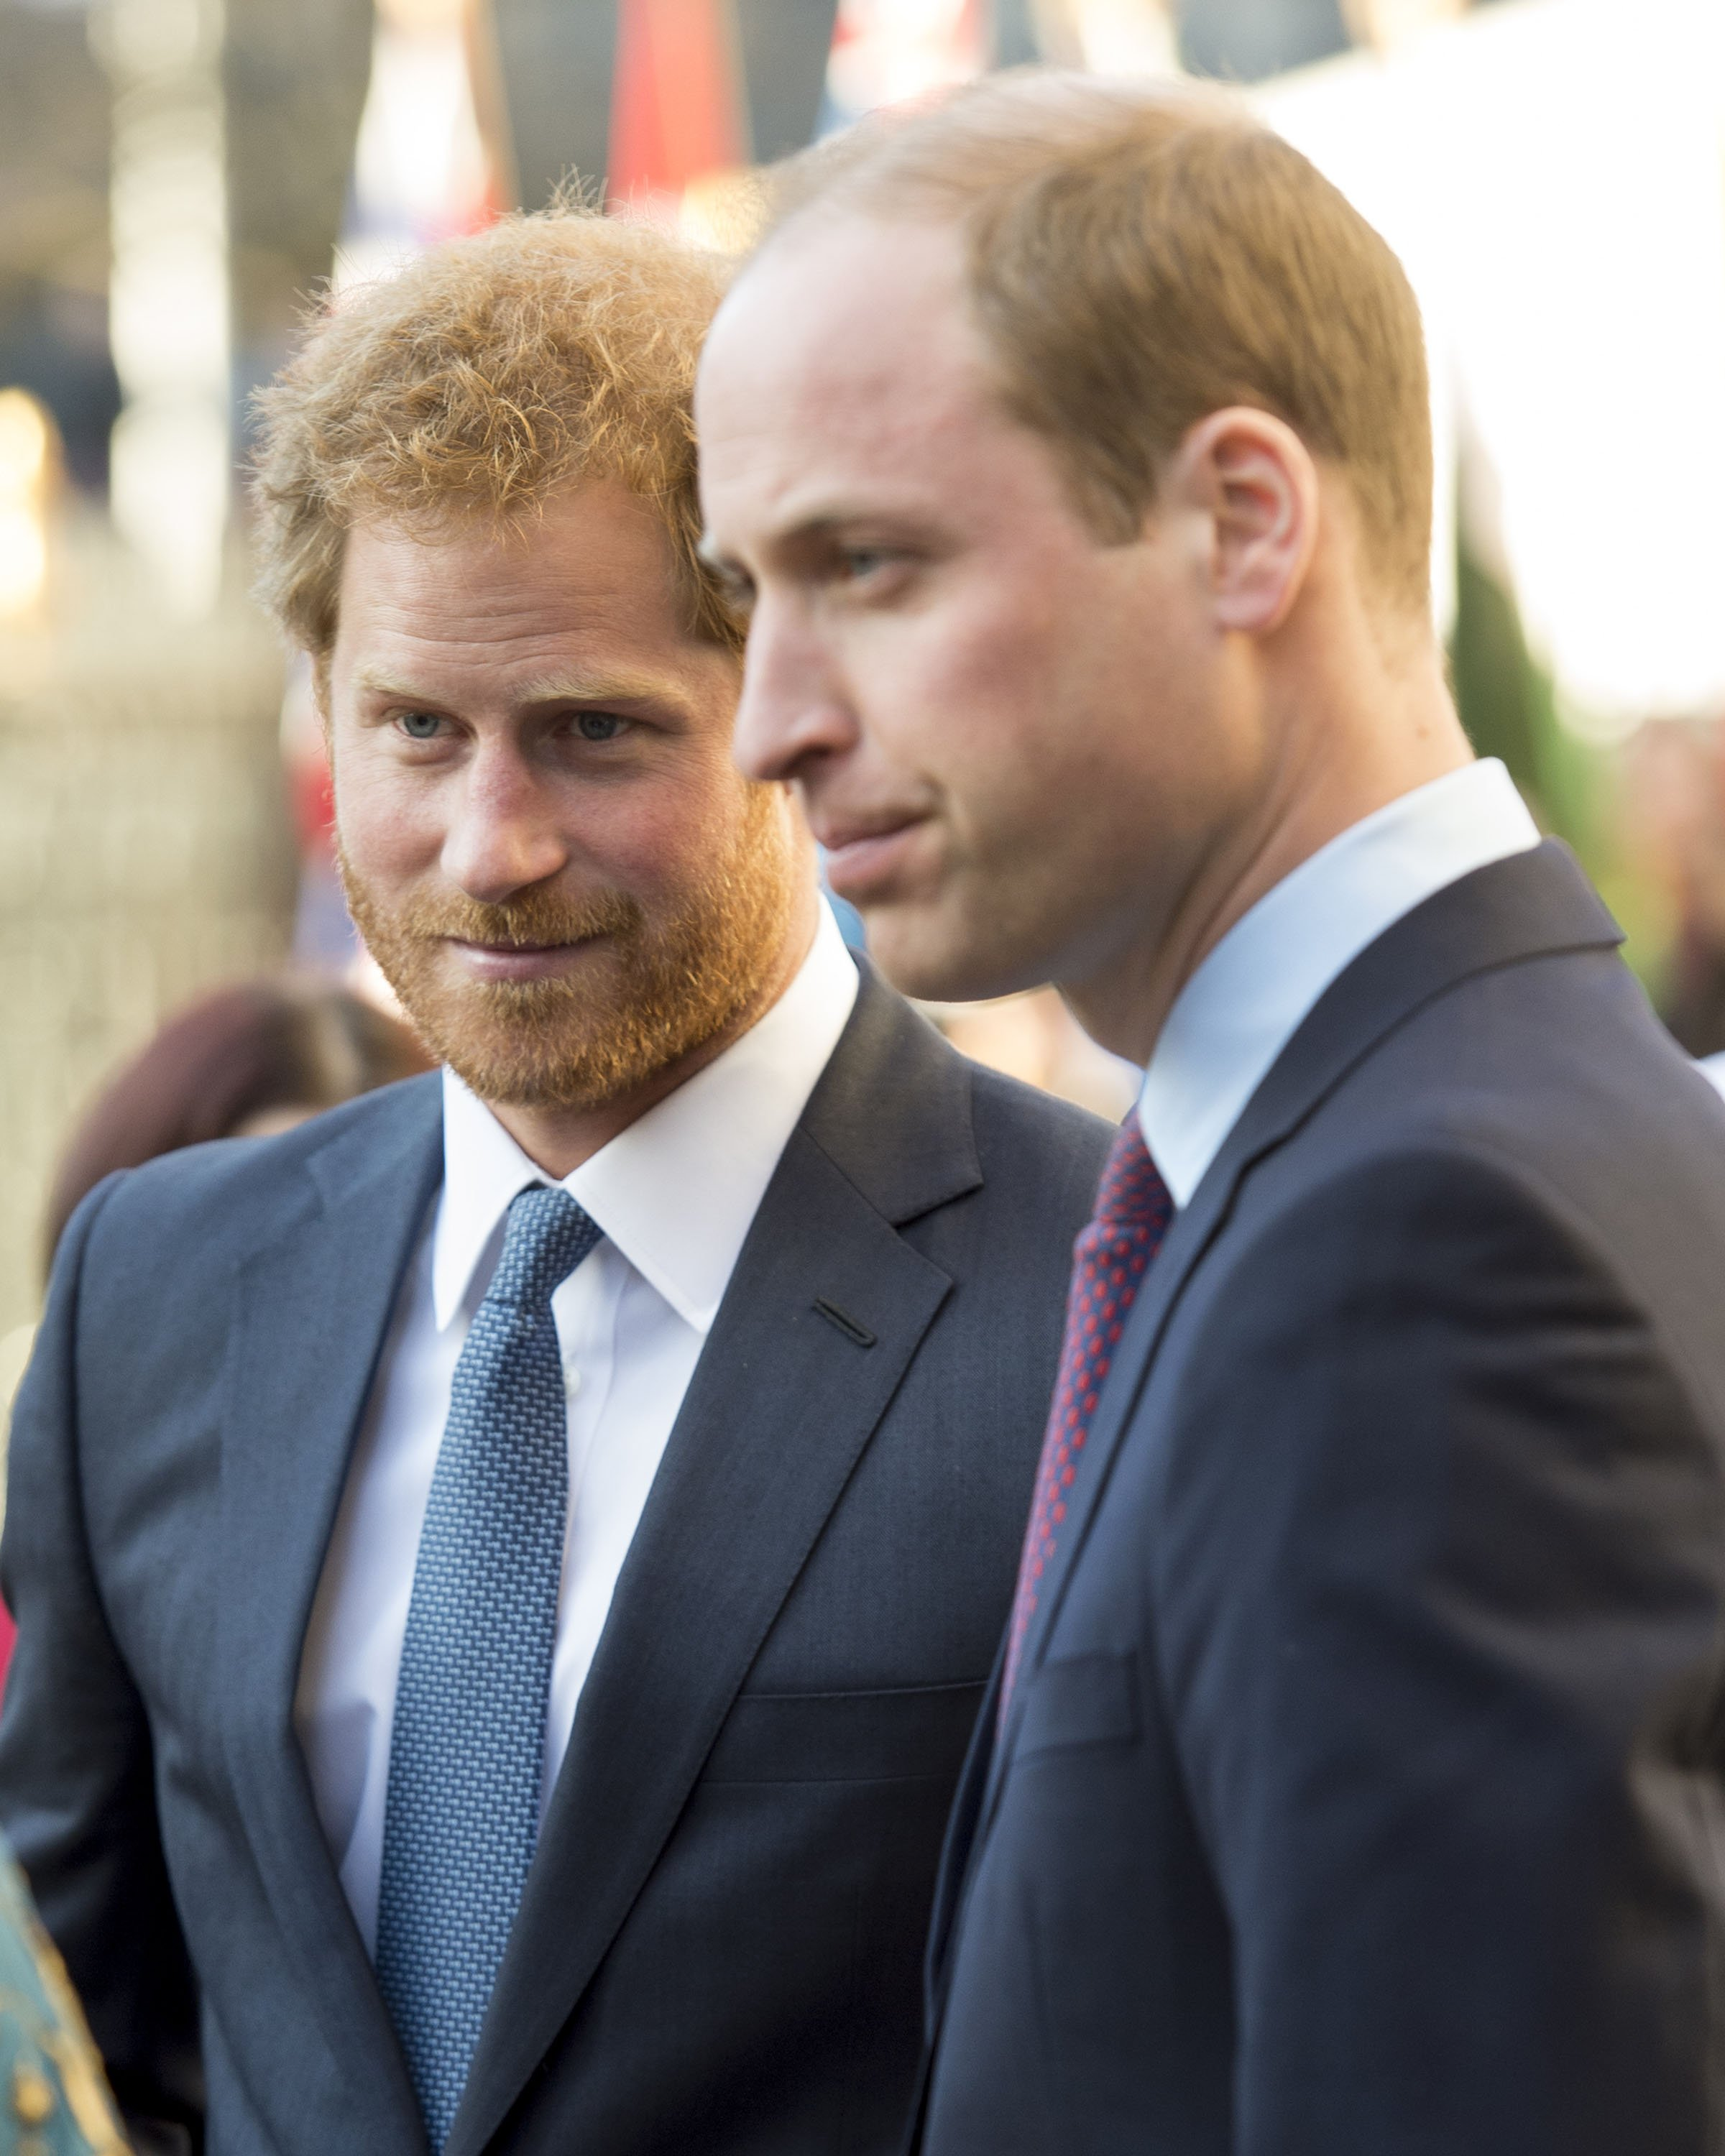 Le prince Harry et le prince William, duc de Cambridge, assistent au service de la journée d'observation du Commonwealth, le 14 mars 2016 à Londres, au Royaume-Uni. | Photo : Getty Images